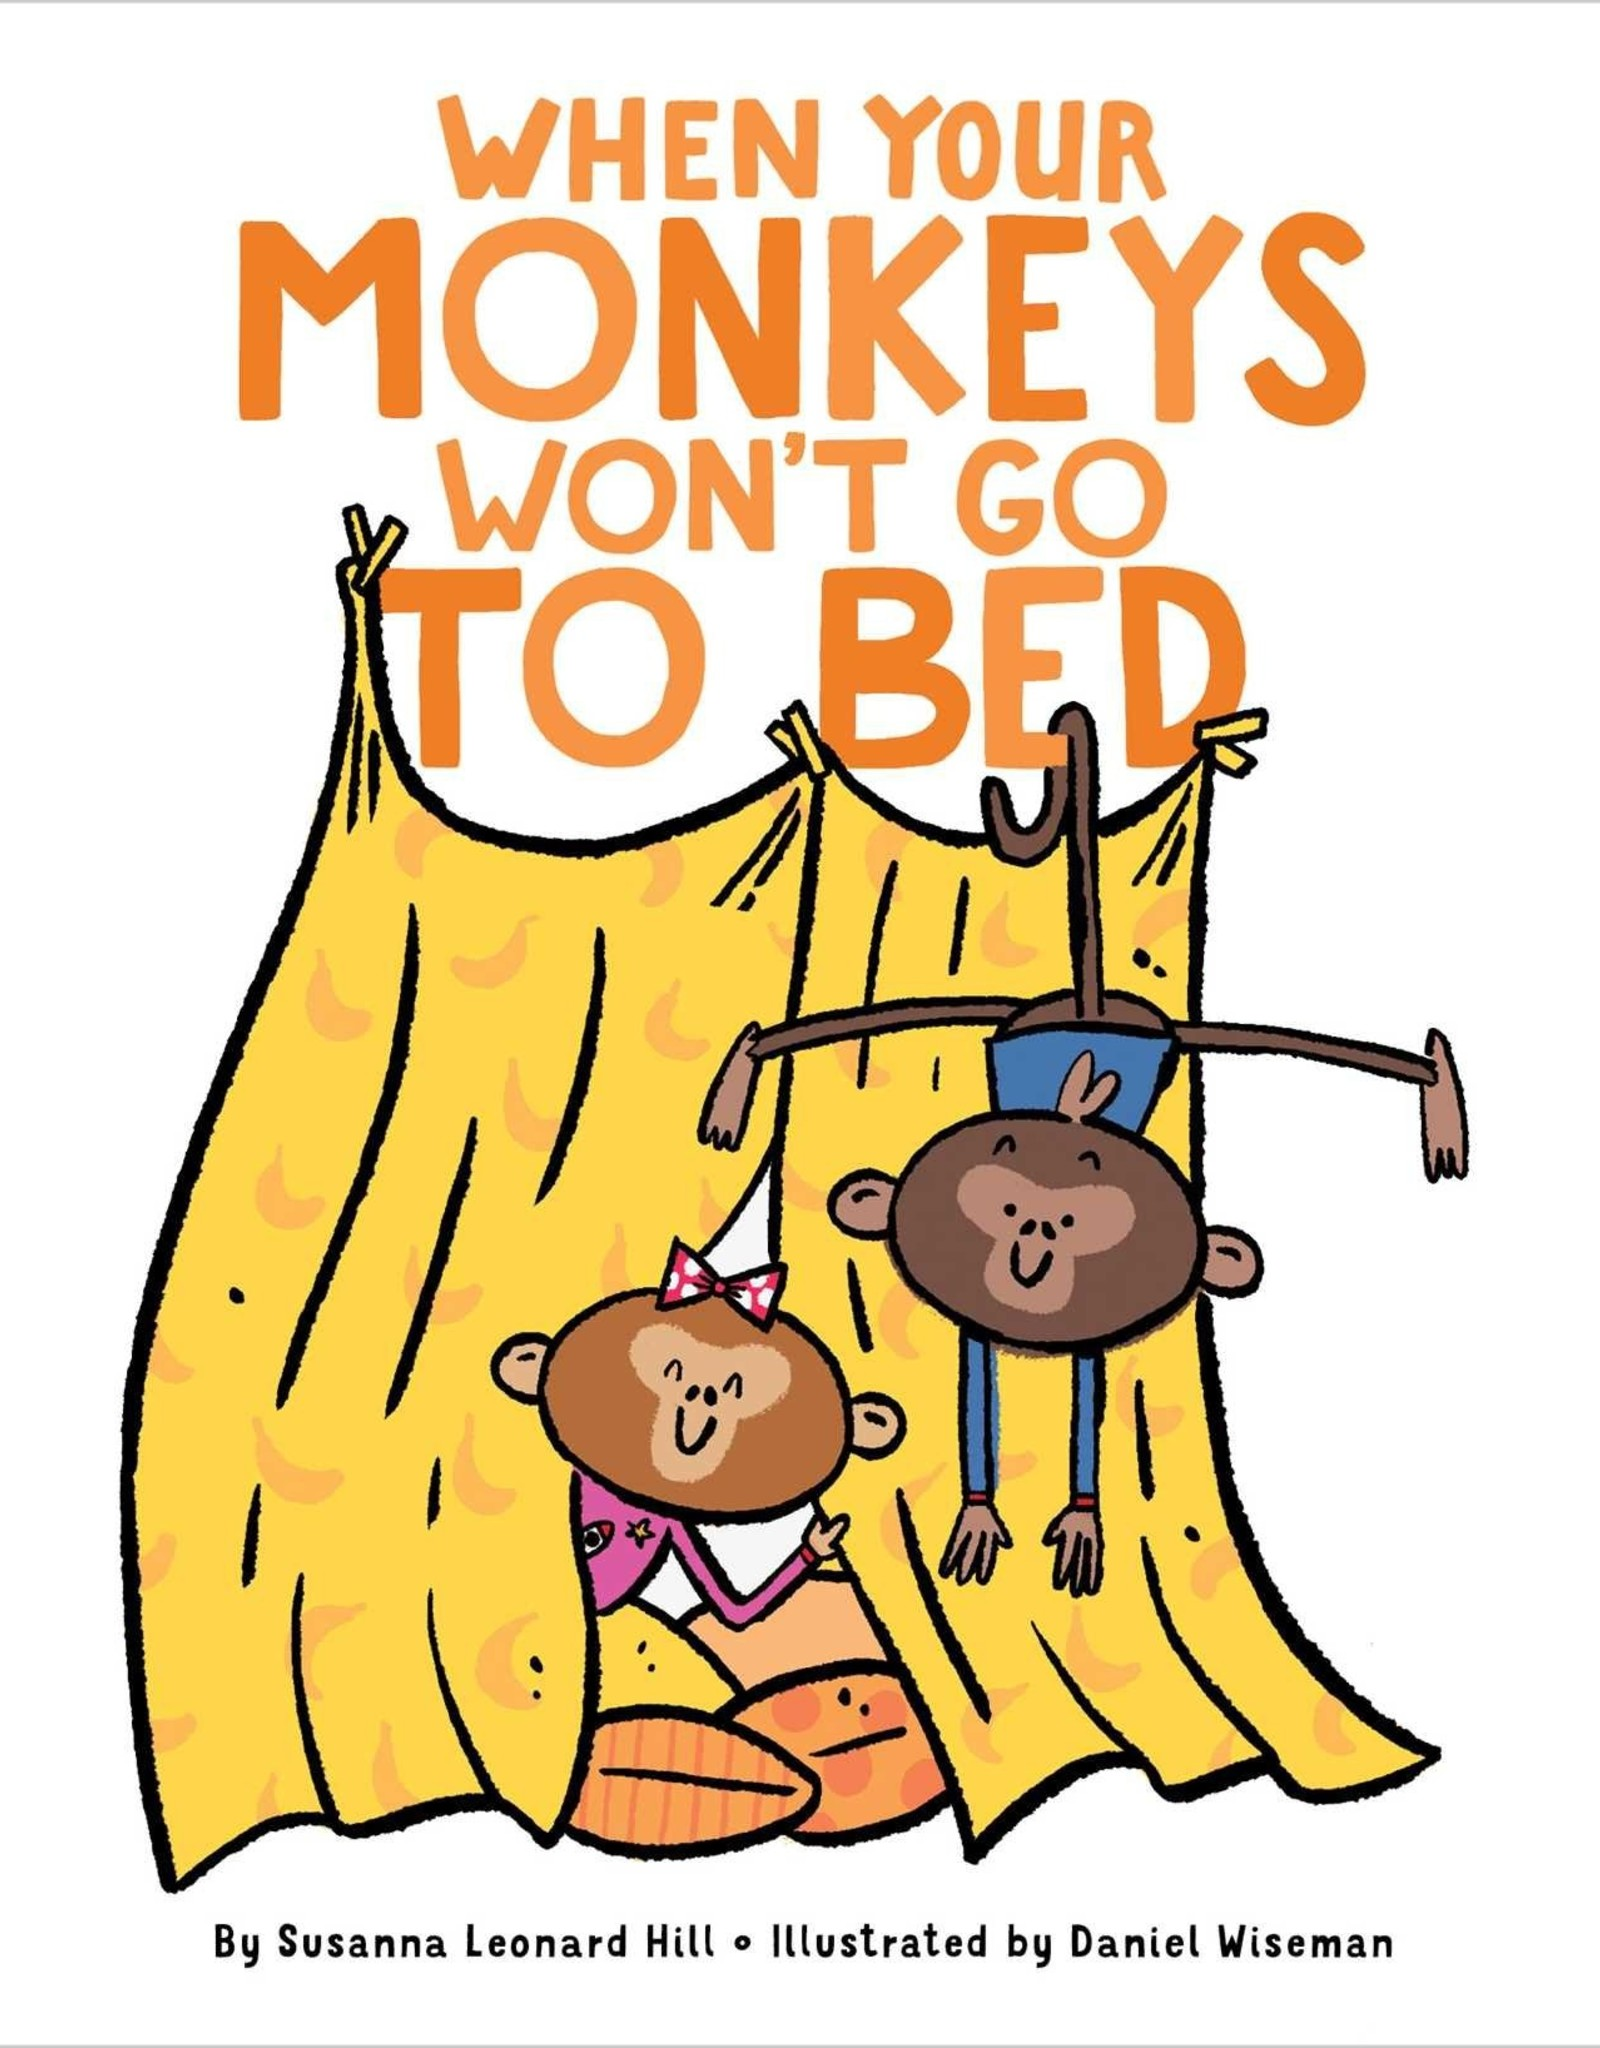 SIMON & SCHUSTER WHEN YOUR MONKEYS WONT GO TO BED BOARD BOOK